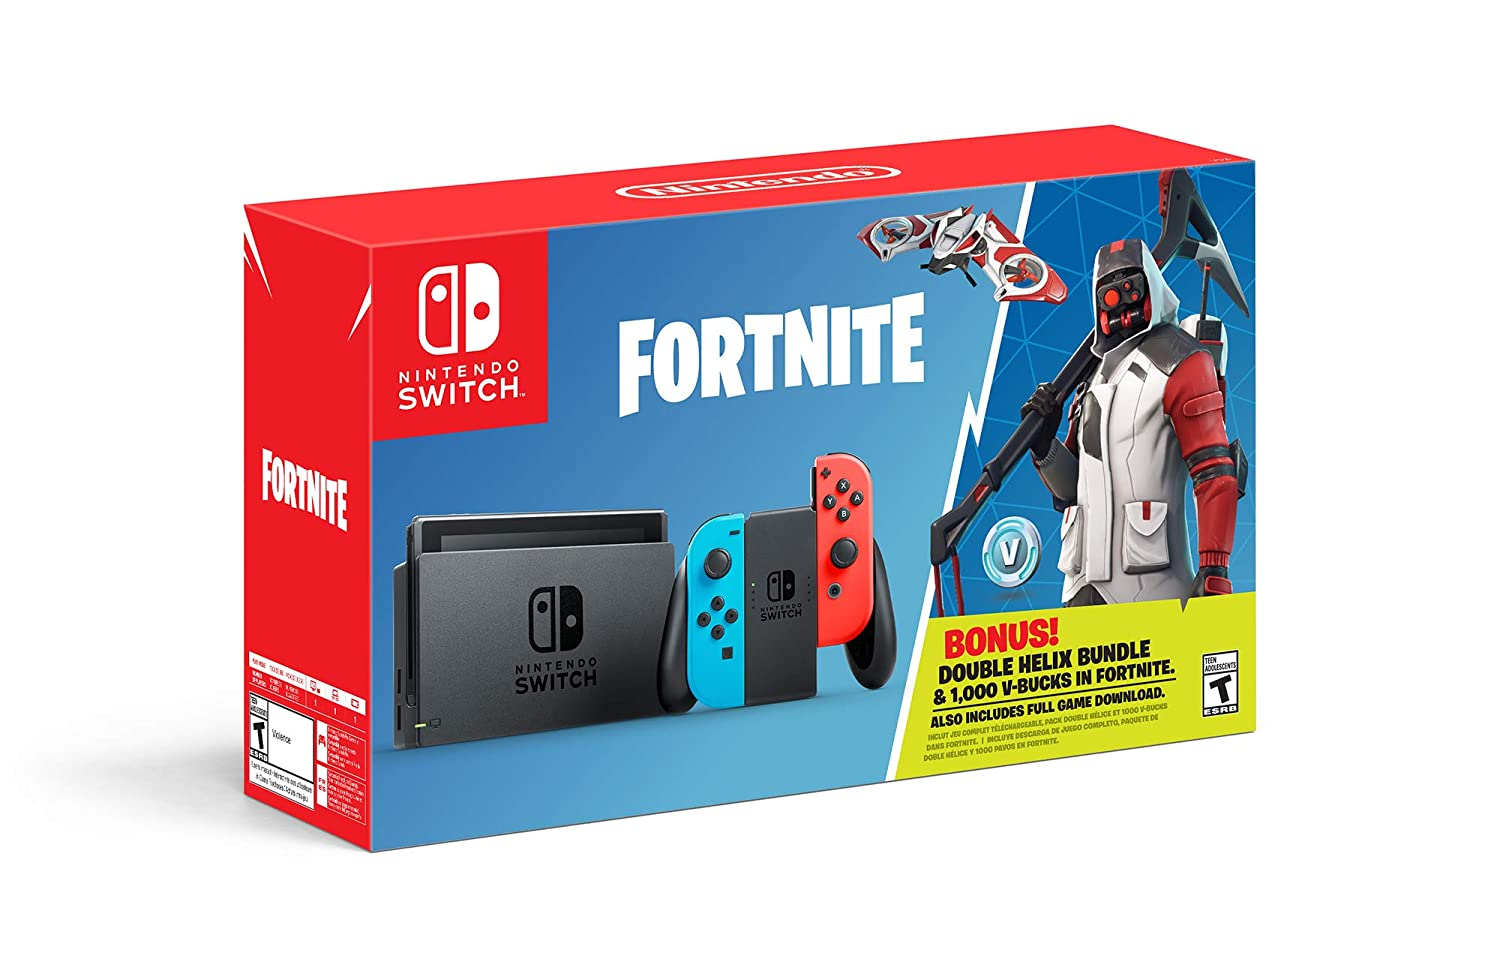 Will There Be A New Wii Switch Fornite Bundle Christmas 2020 Amazon.com: Nintendo Switch: Fortnite   Double Helix Console